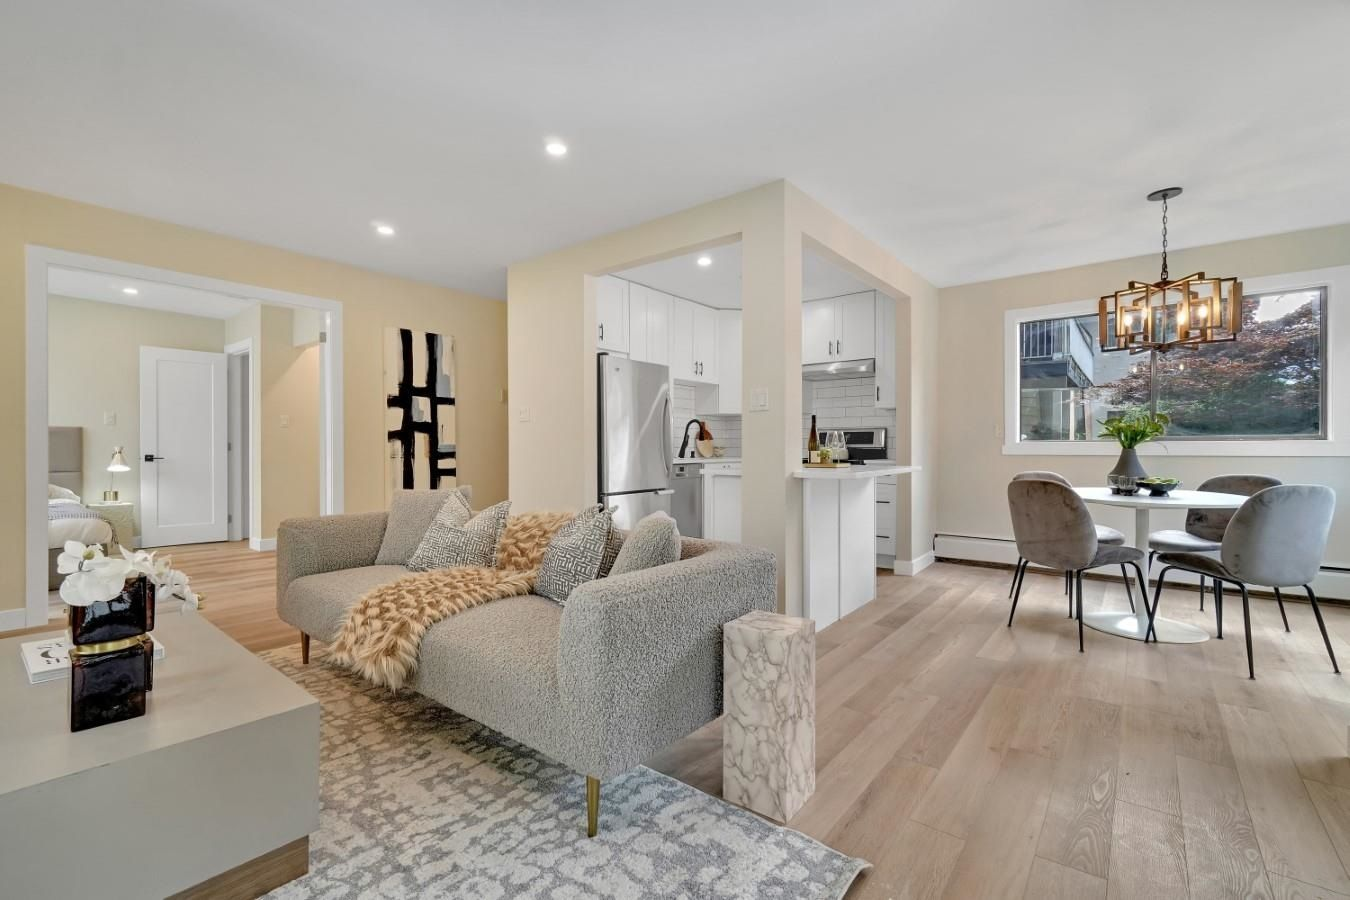 """Main Photo: 206 330 W 2ND Street in North Vancouver: Lower Lonsdale Condo for sale in """"LORRAINE PLACE"""" : MLS®# R2604160"""